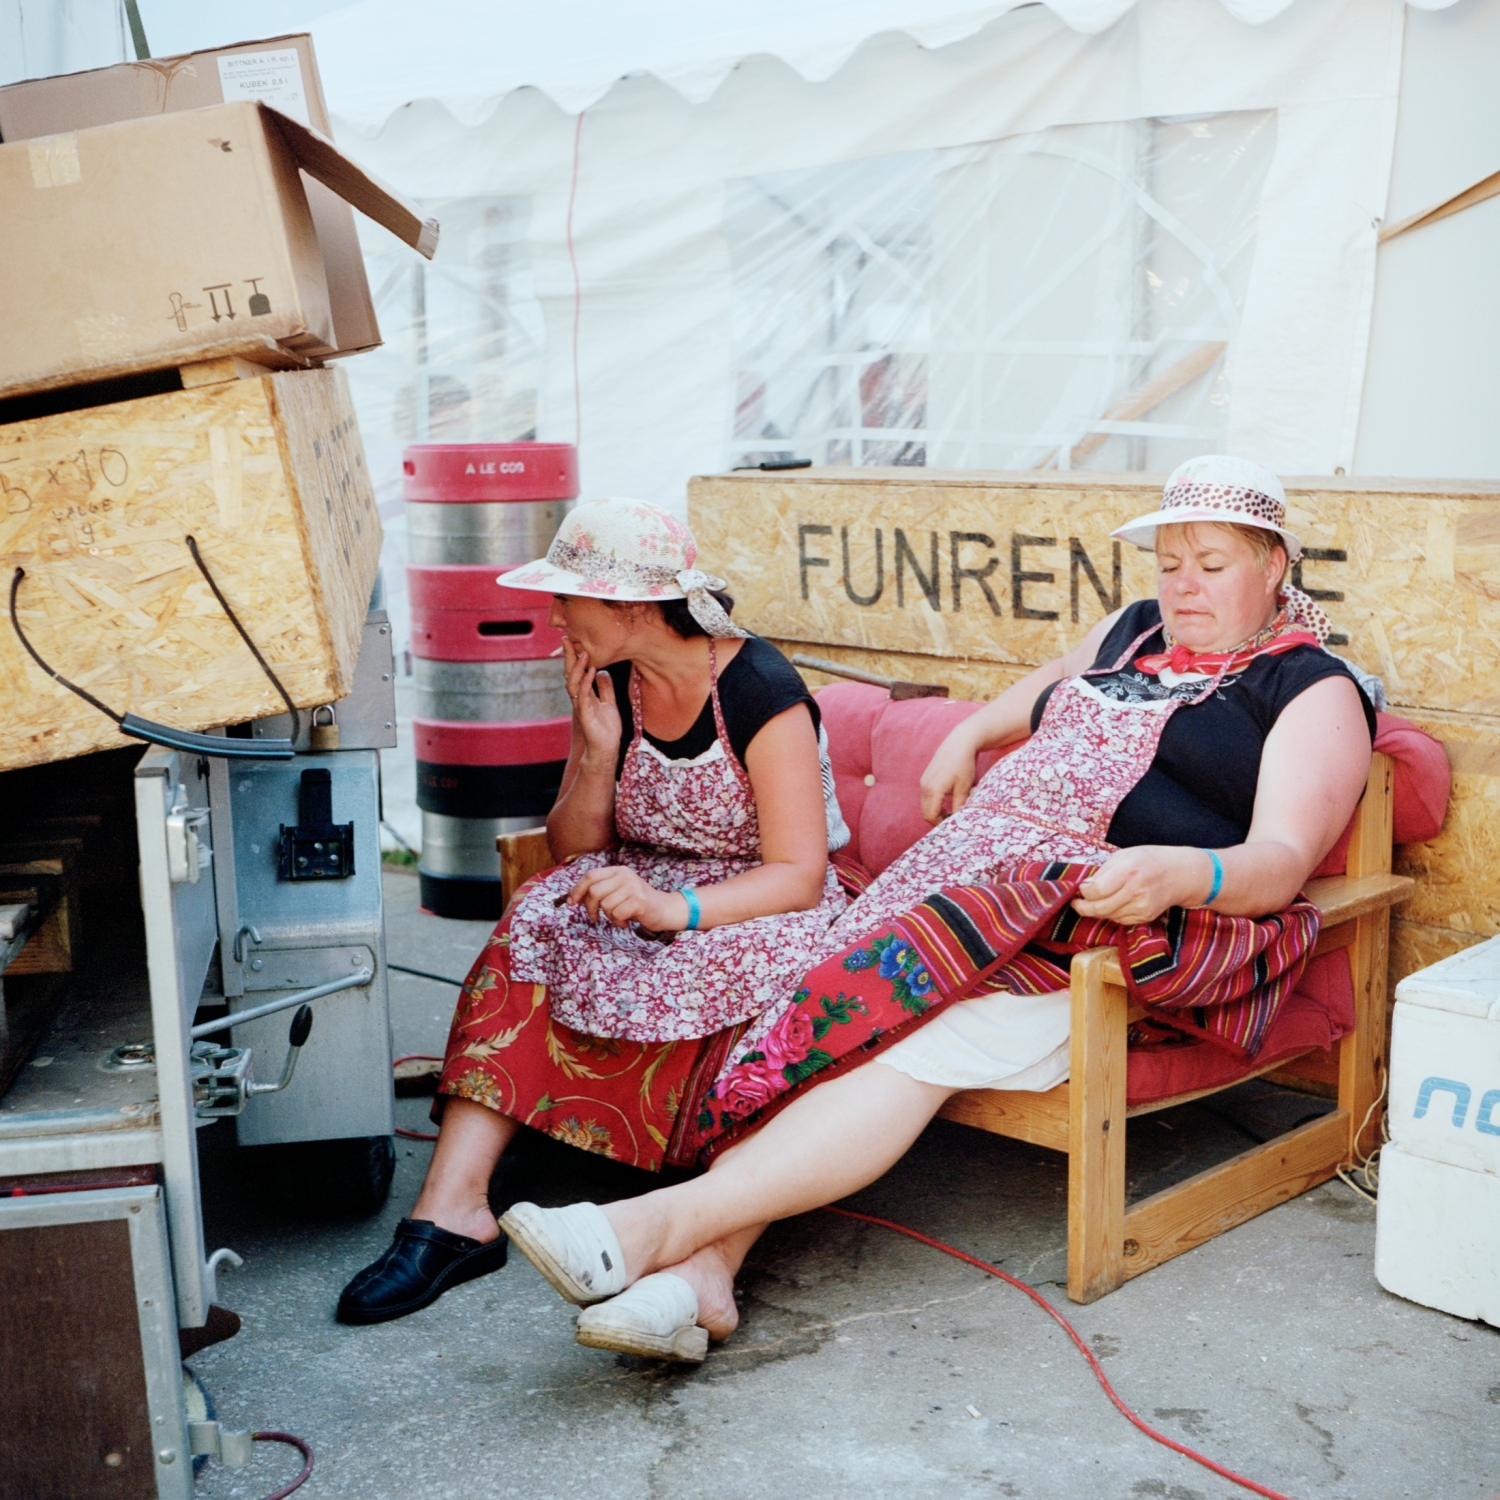 During the Ocean Fest (Merepidu), Talvi and Merike take a break between the first and second meal servings. Many continentals visit making the summer months financially important for the island of Kihnu. July 2014.